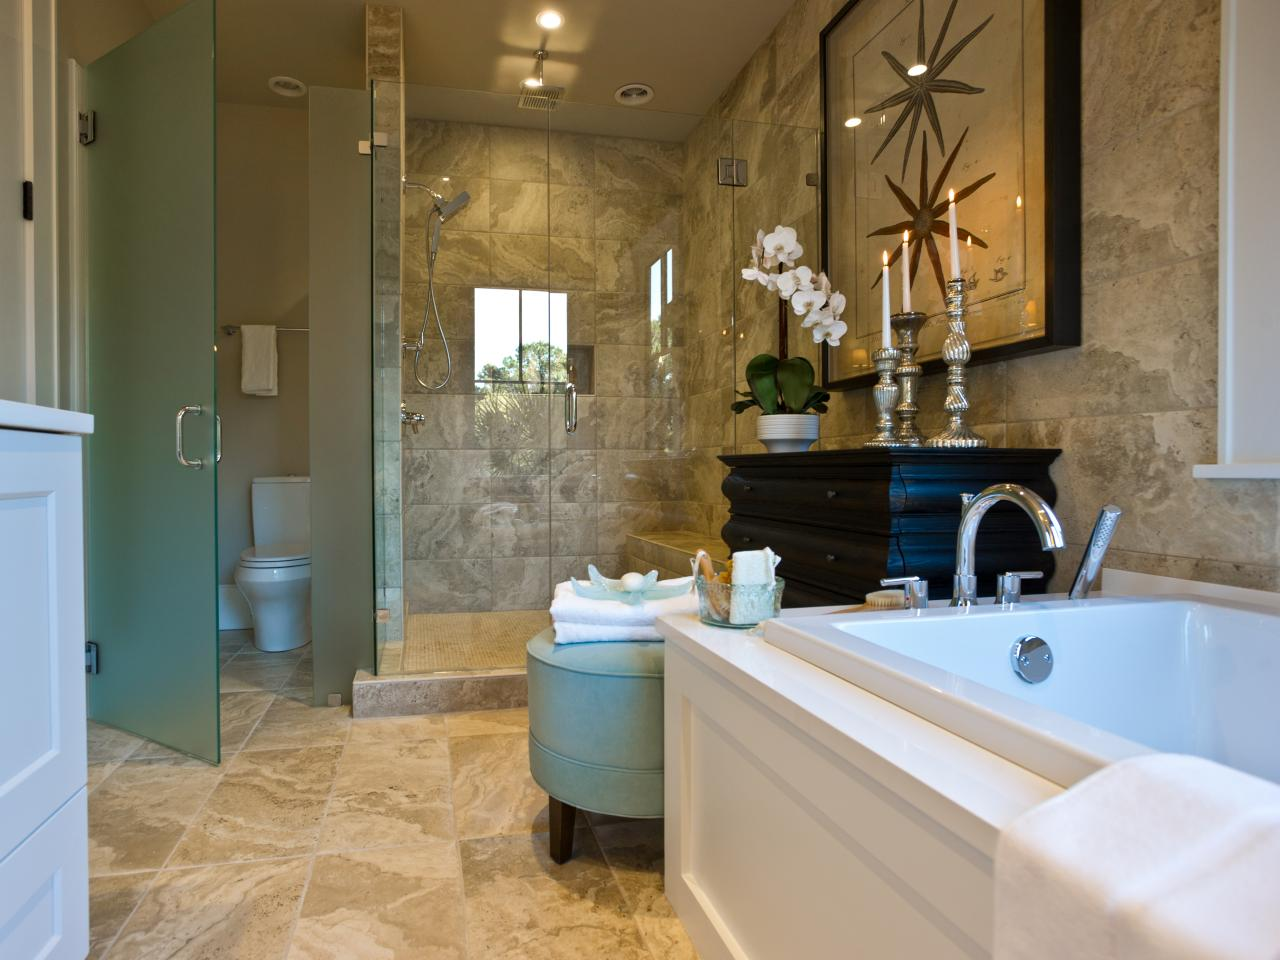 Hgtv dream home 2013 master bathroom pictures and video for Modern small bathroom designs 2013